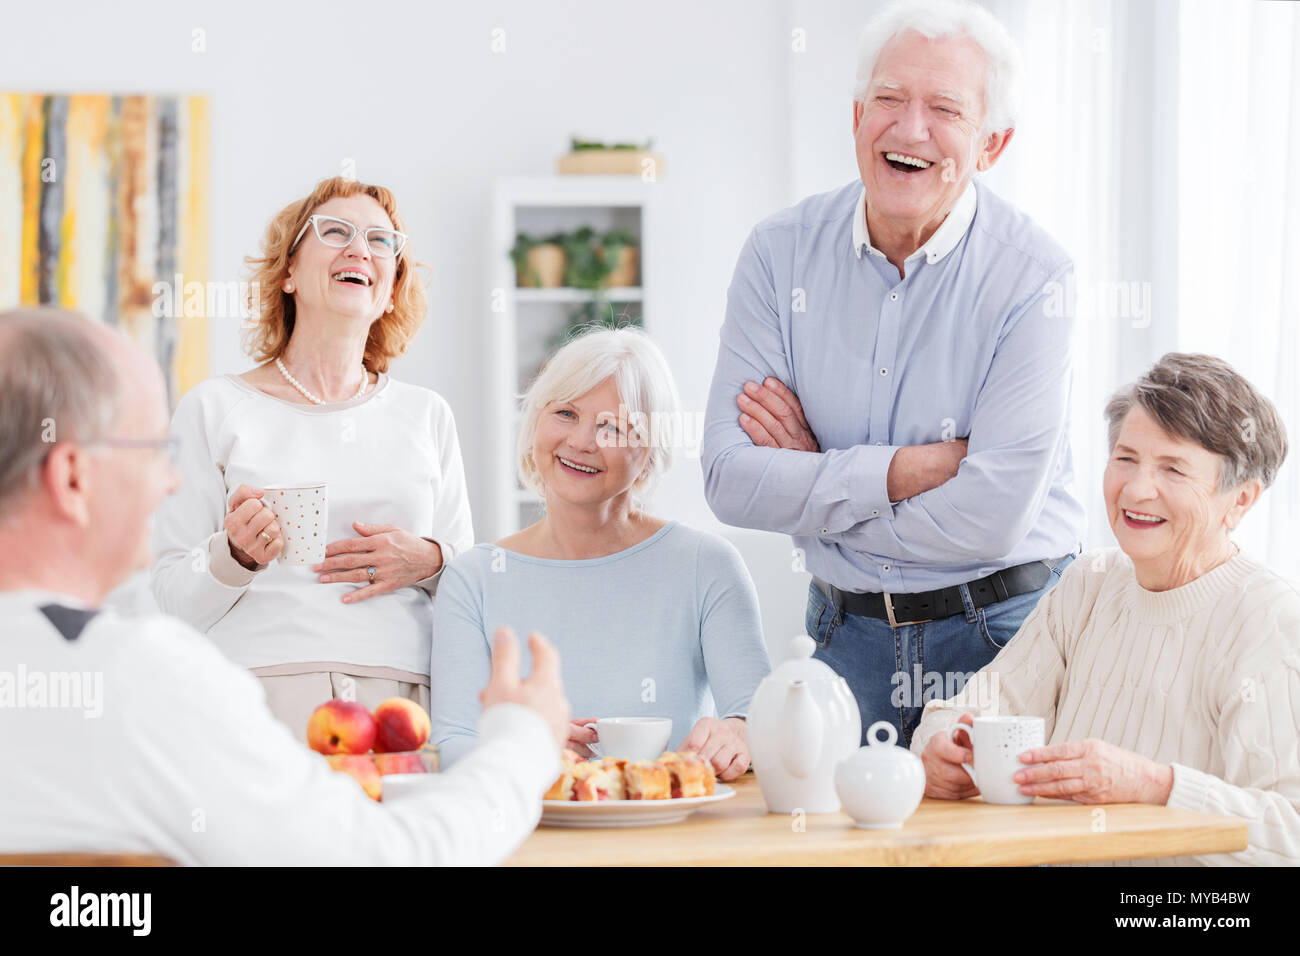 Group Of Happy Older People Laughing Together On A Meeting